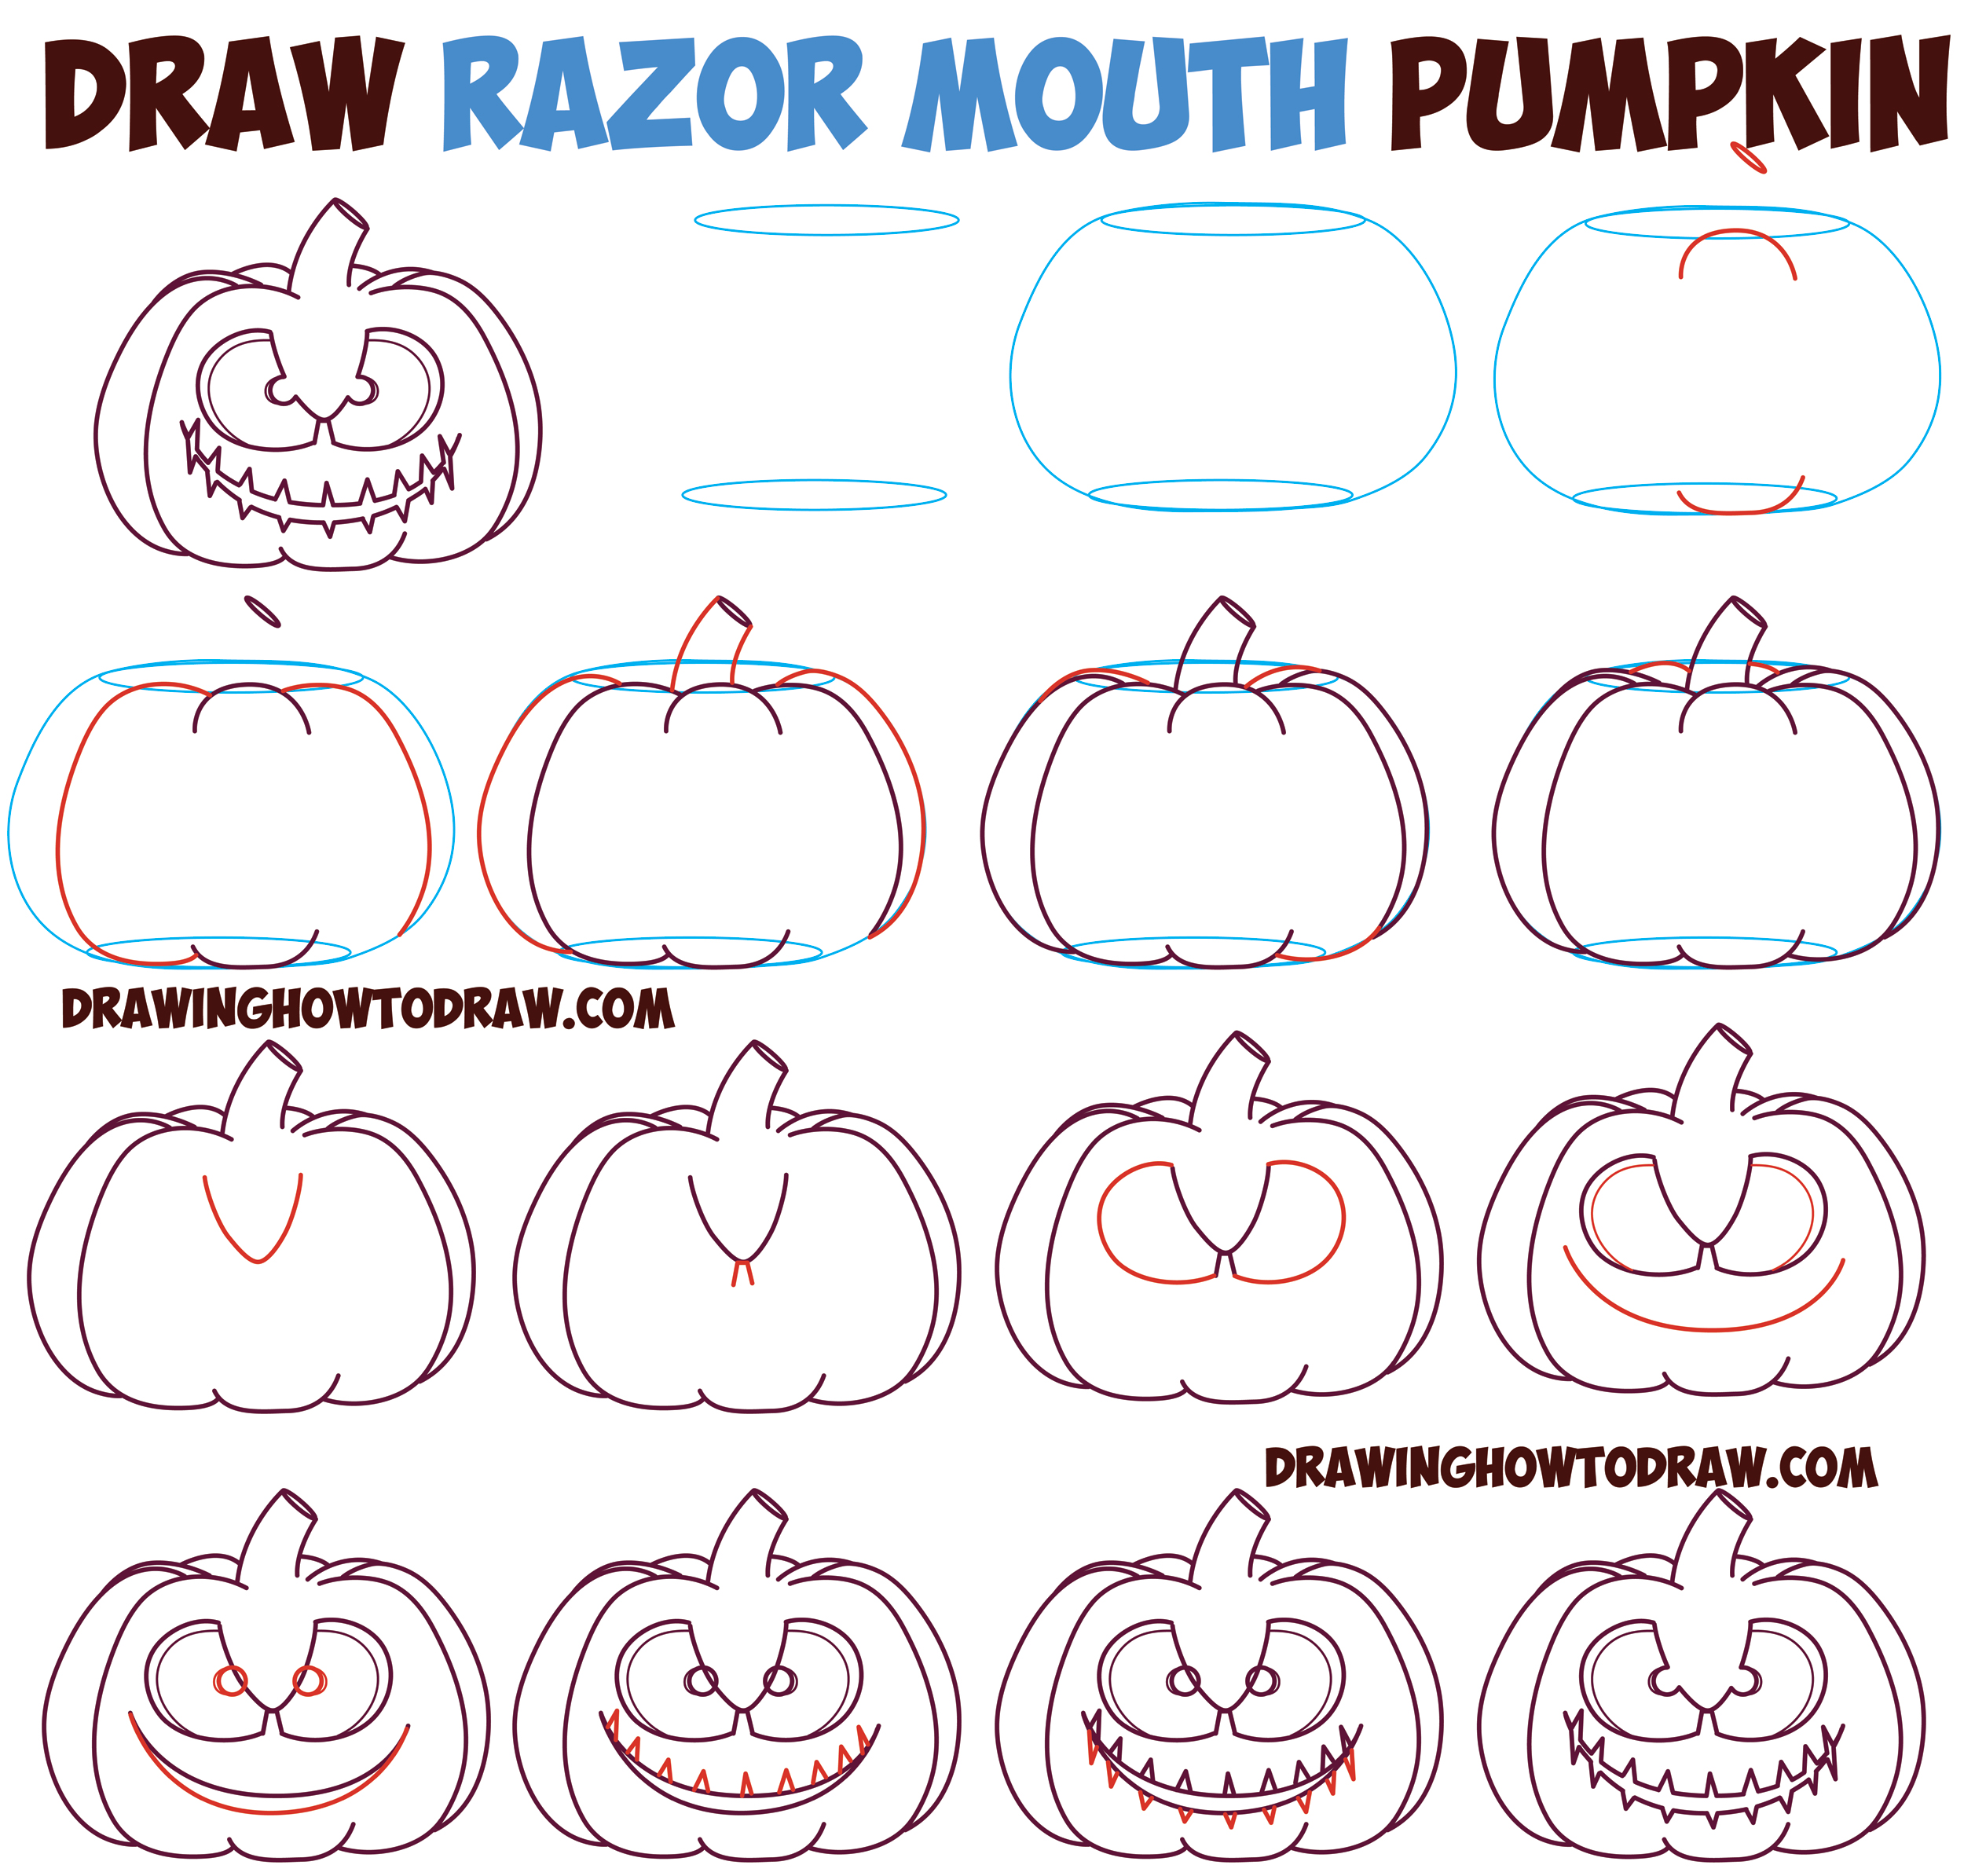 How to Draw Cartoon Pumpkin / Jack O'Lantern : Razor Mouth / Cut Mouth Evil Scary Creepy Pumpkin